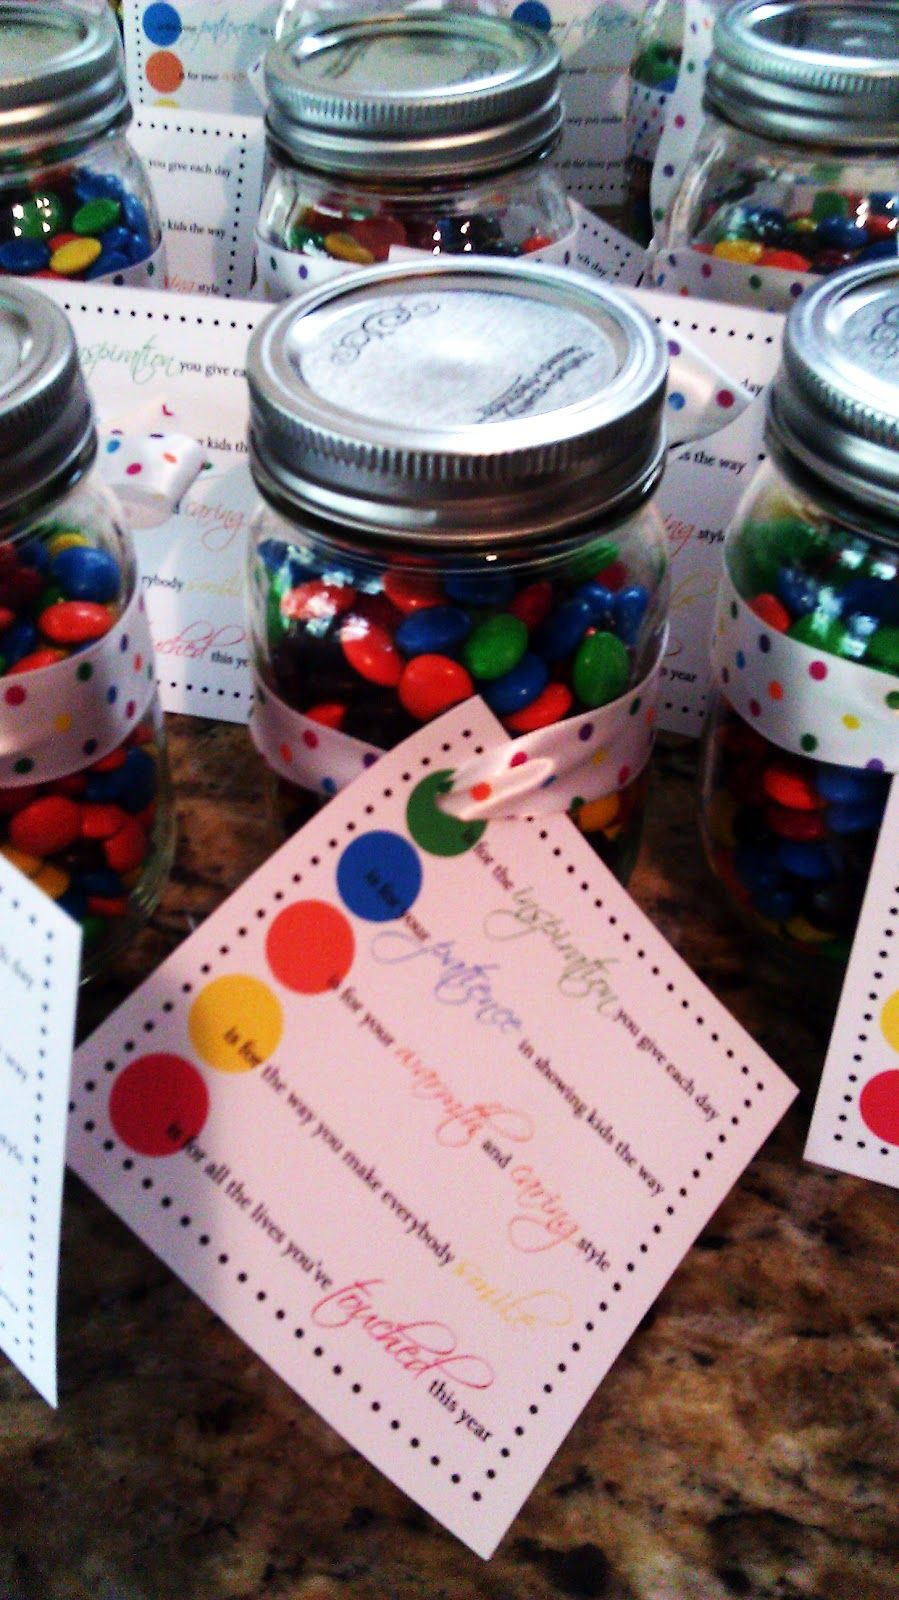 Cute idea for a teacher giftsports coach gift treats for